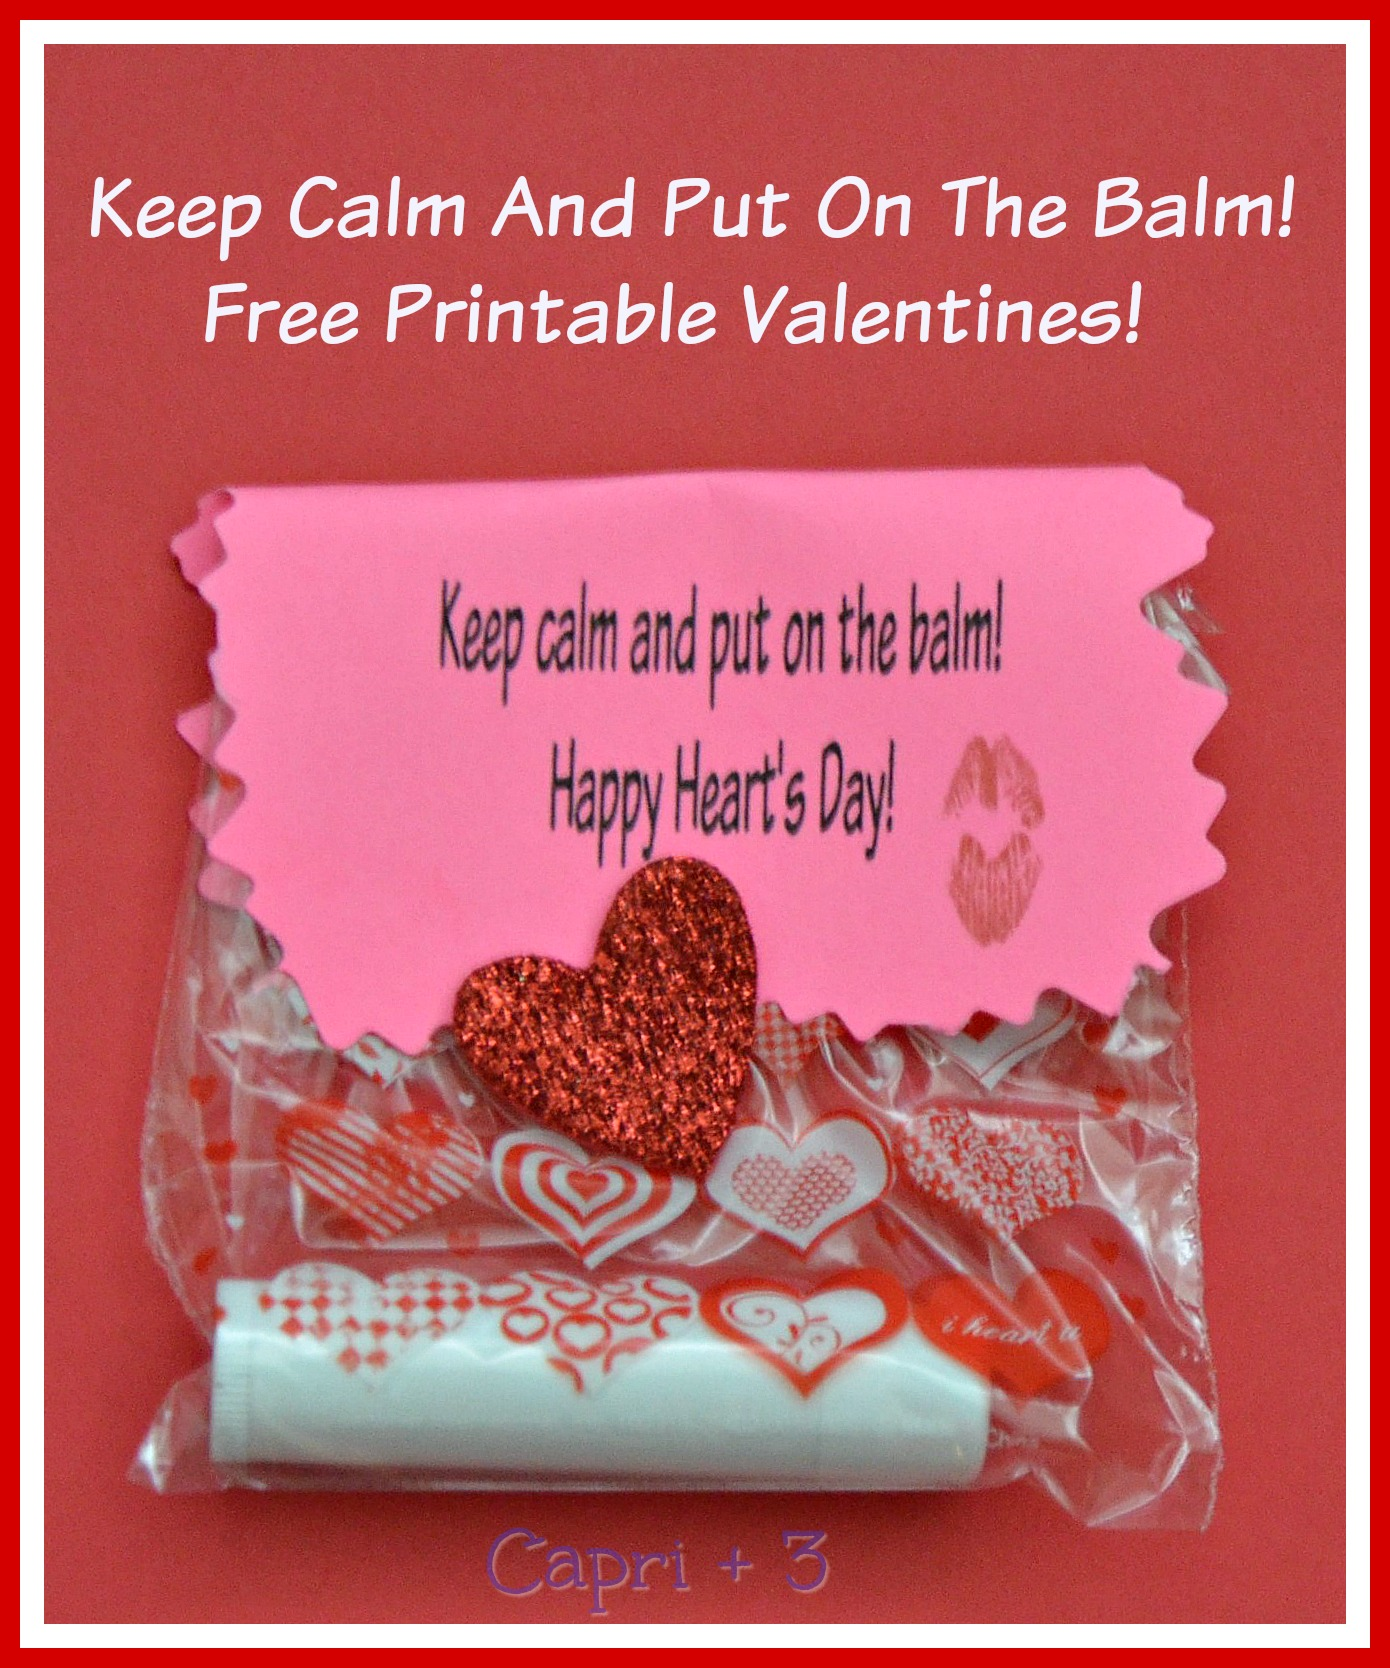 photo regarding You're the Balm Free Printable identified as Continue to keep quiet and location upon the balm Totally free Printable Valentine